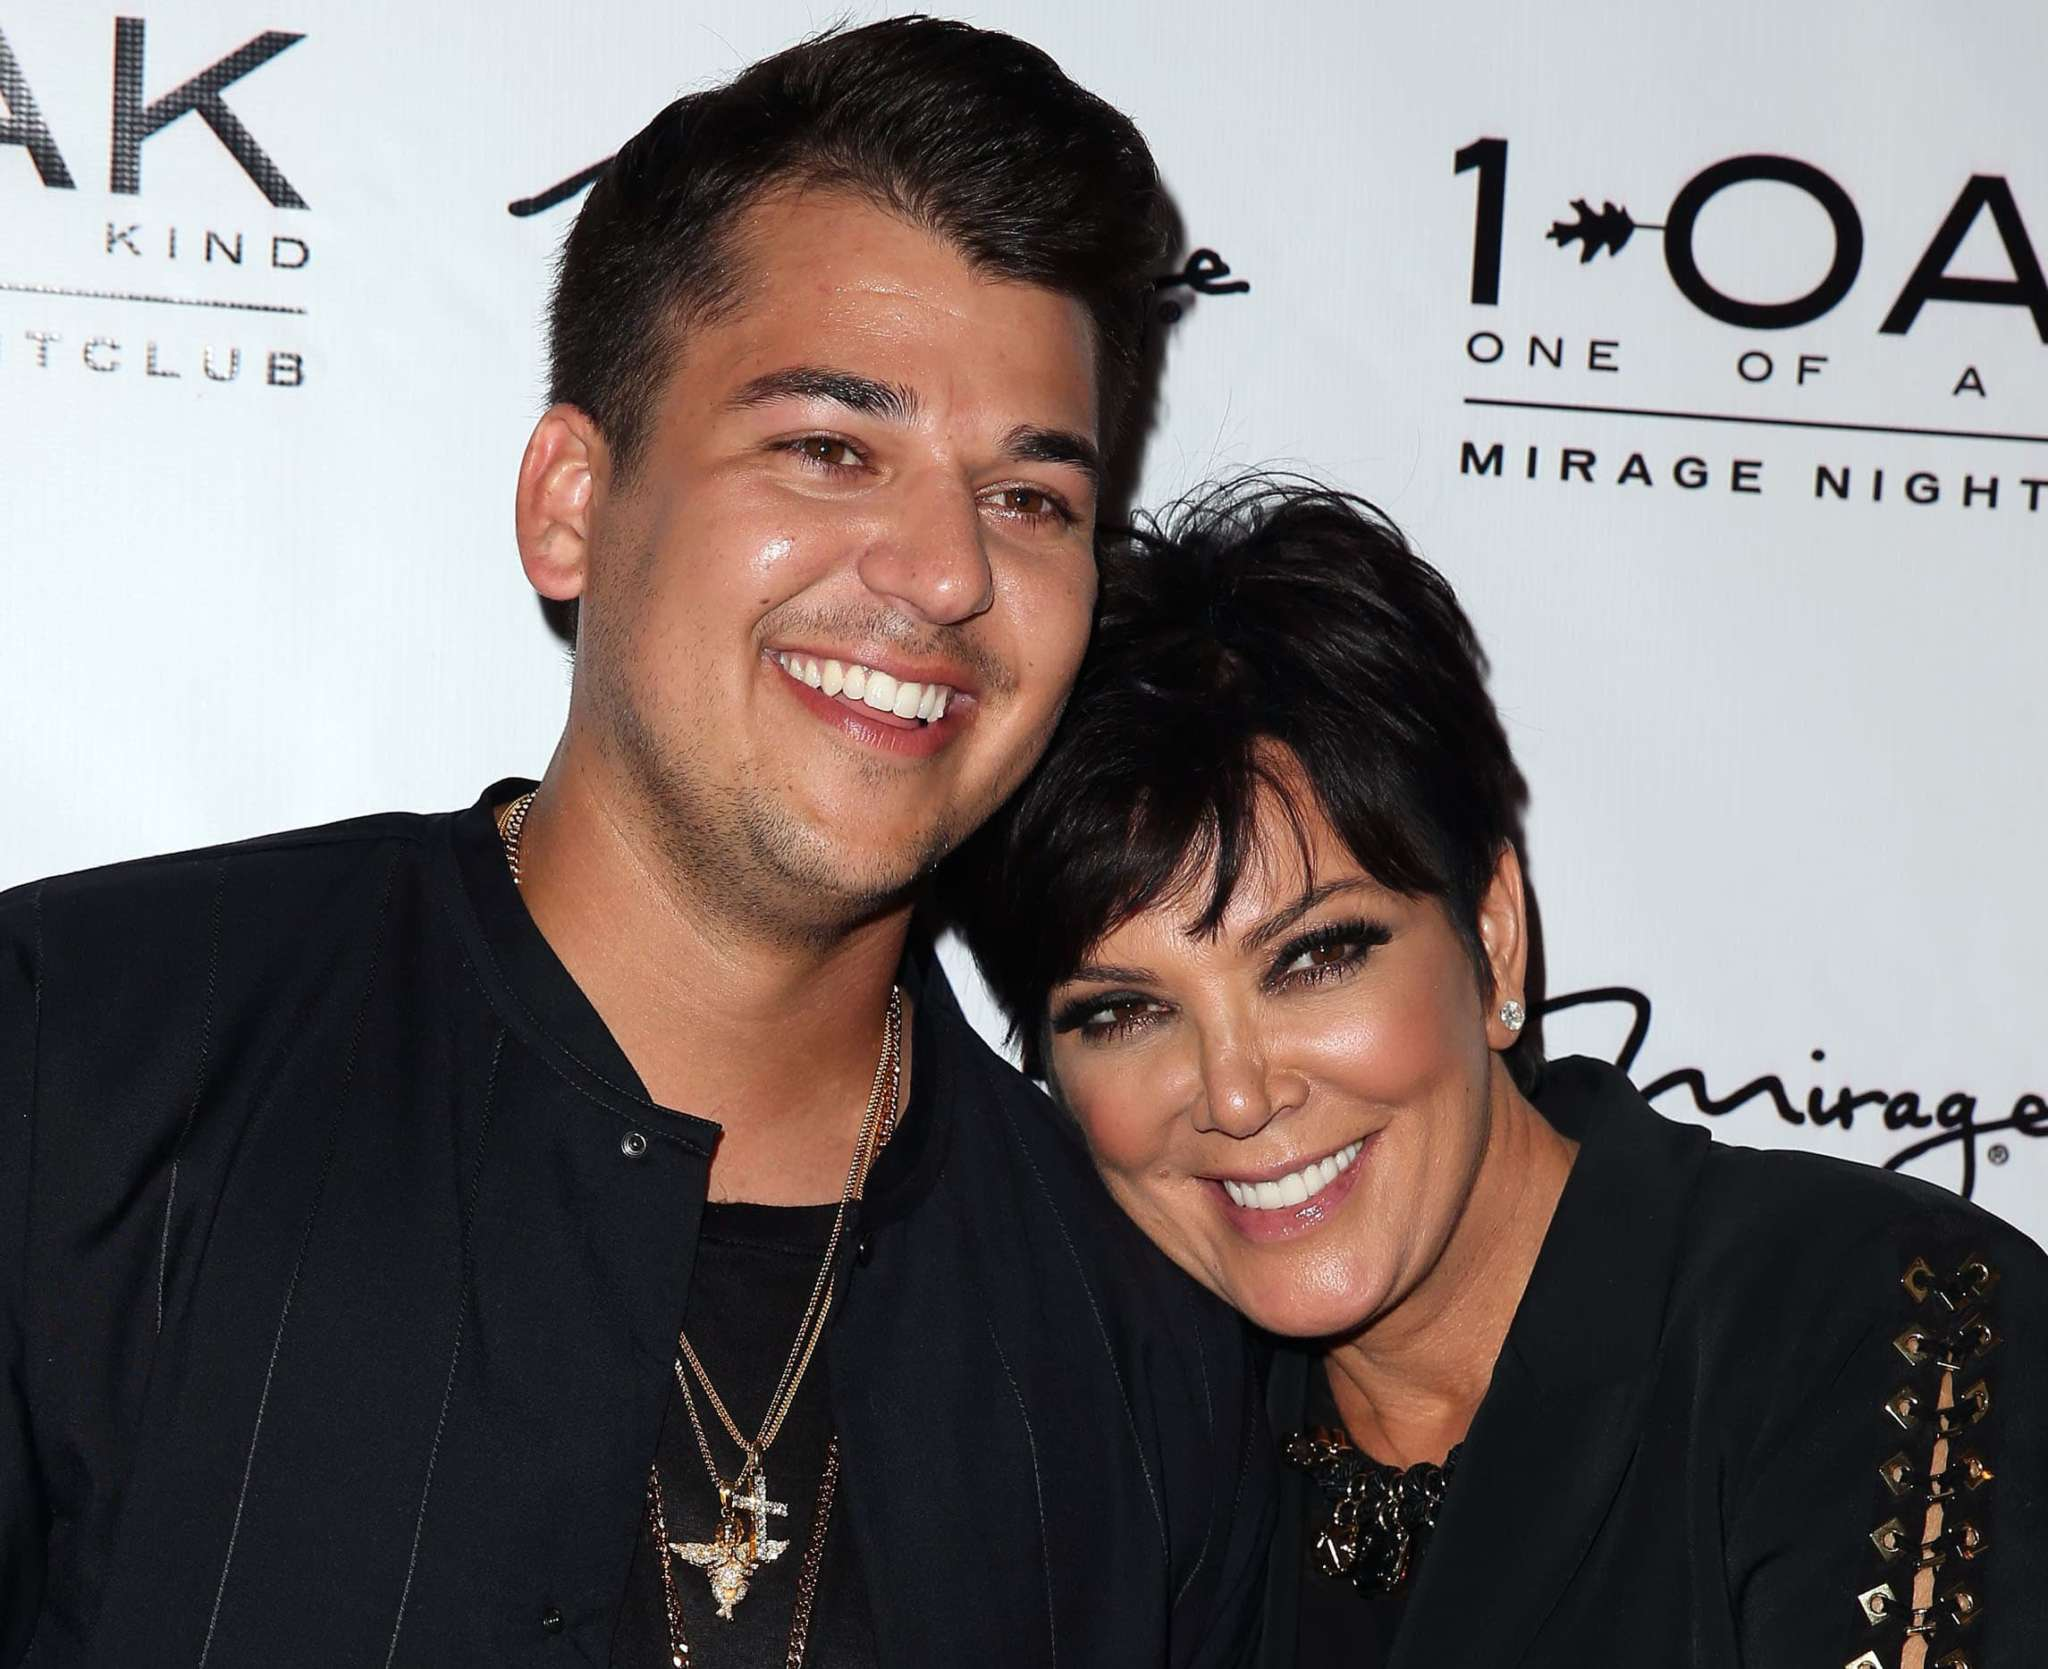 Rob Kardashian Celebrates His 33rd Birthday And Fans Wish Him All The Best - See His Mother, Kris Jenner's Message